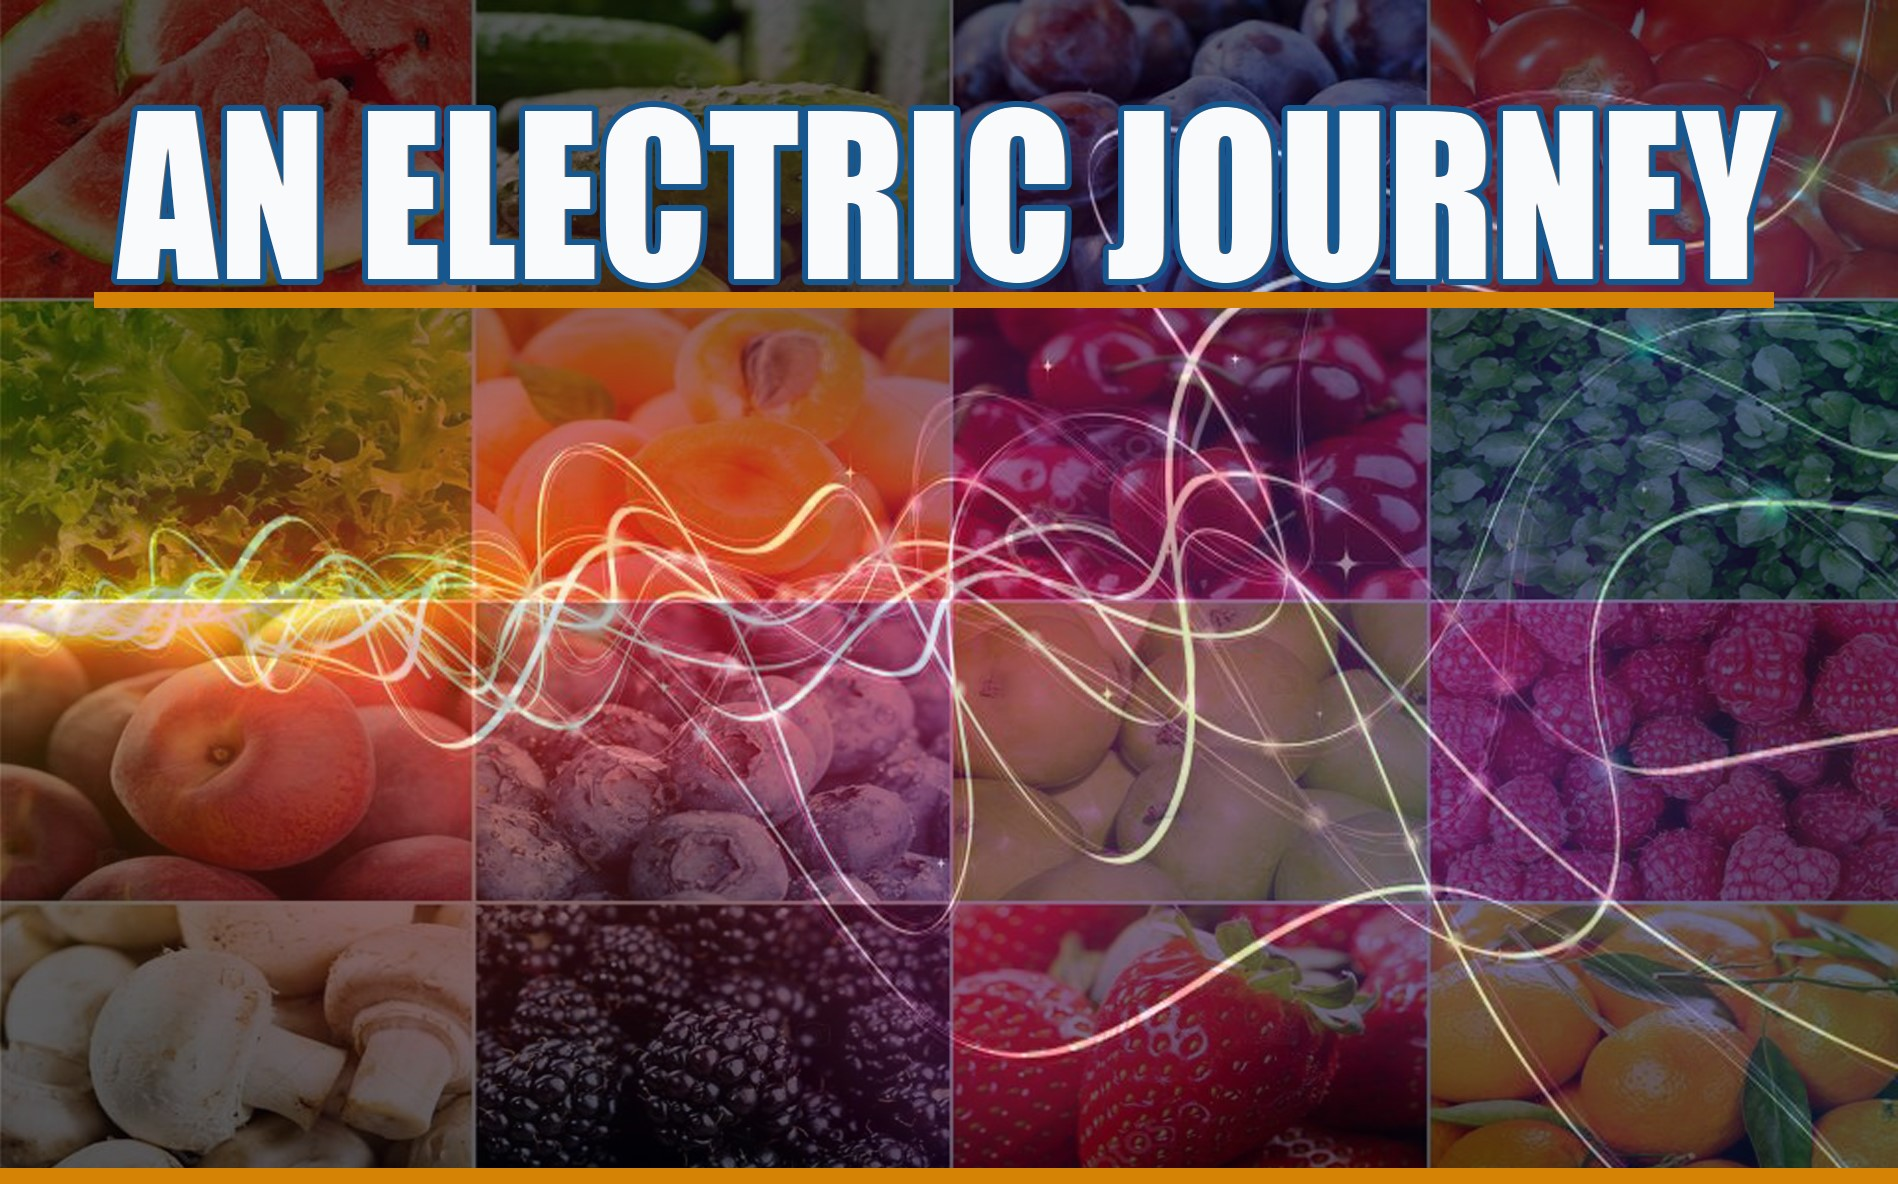 AN ELECTRIC JOURNEY AD avi